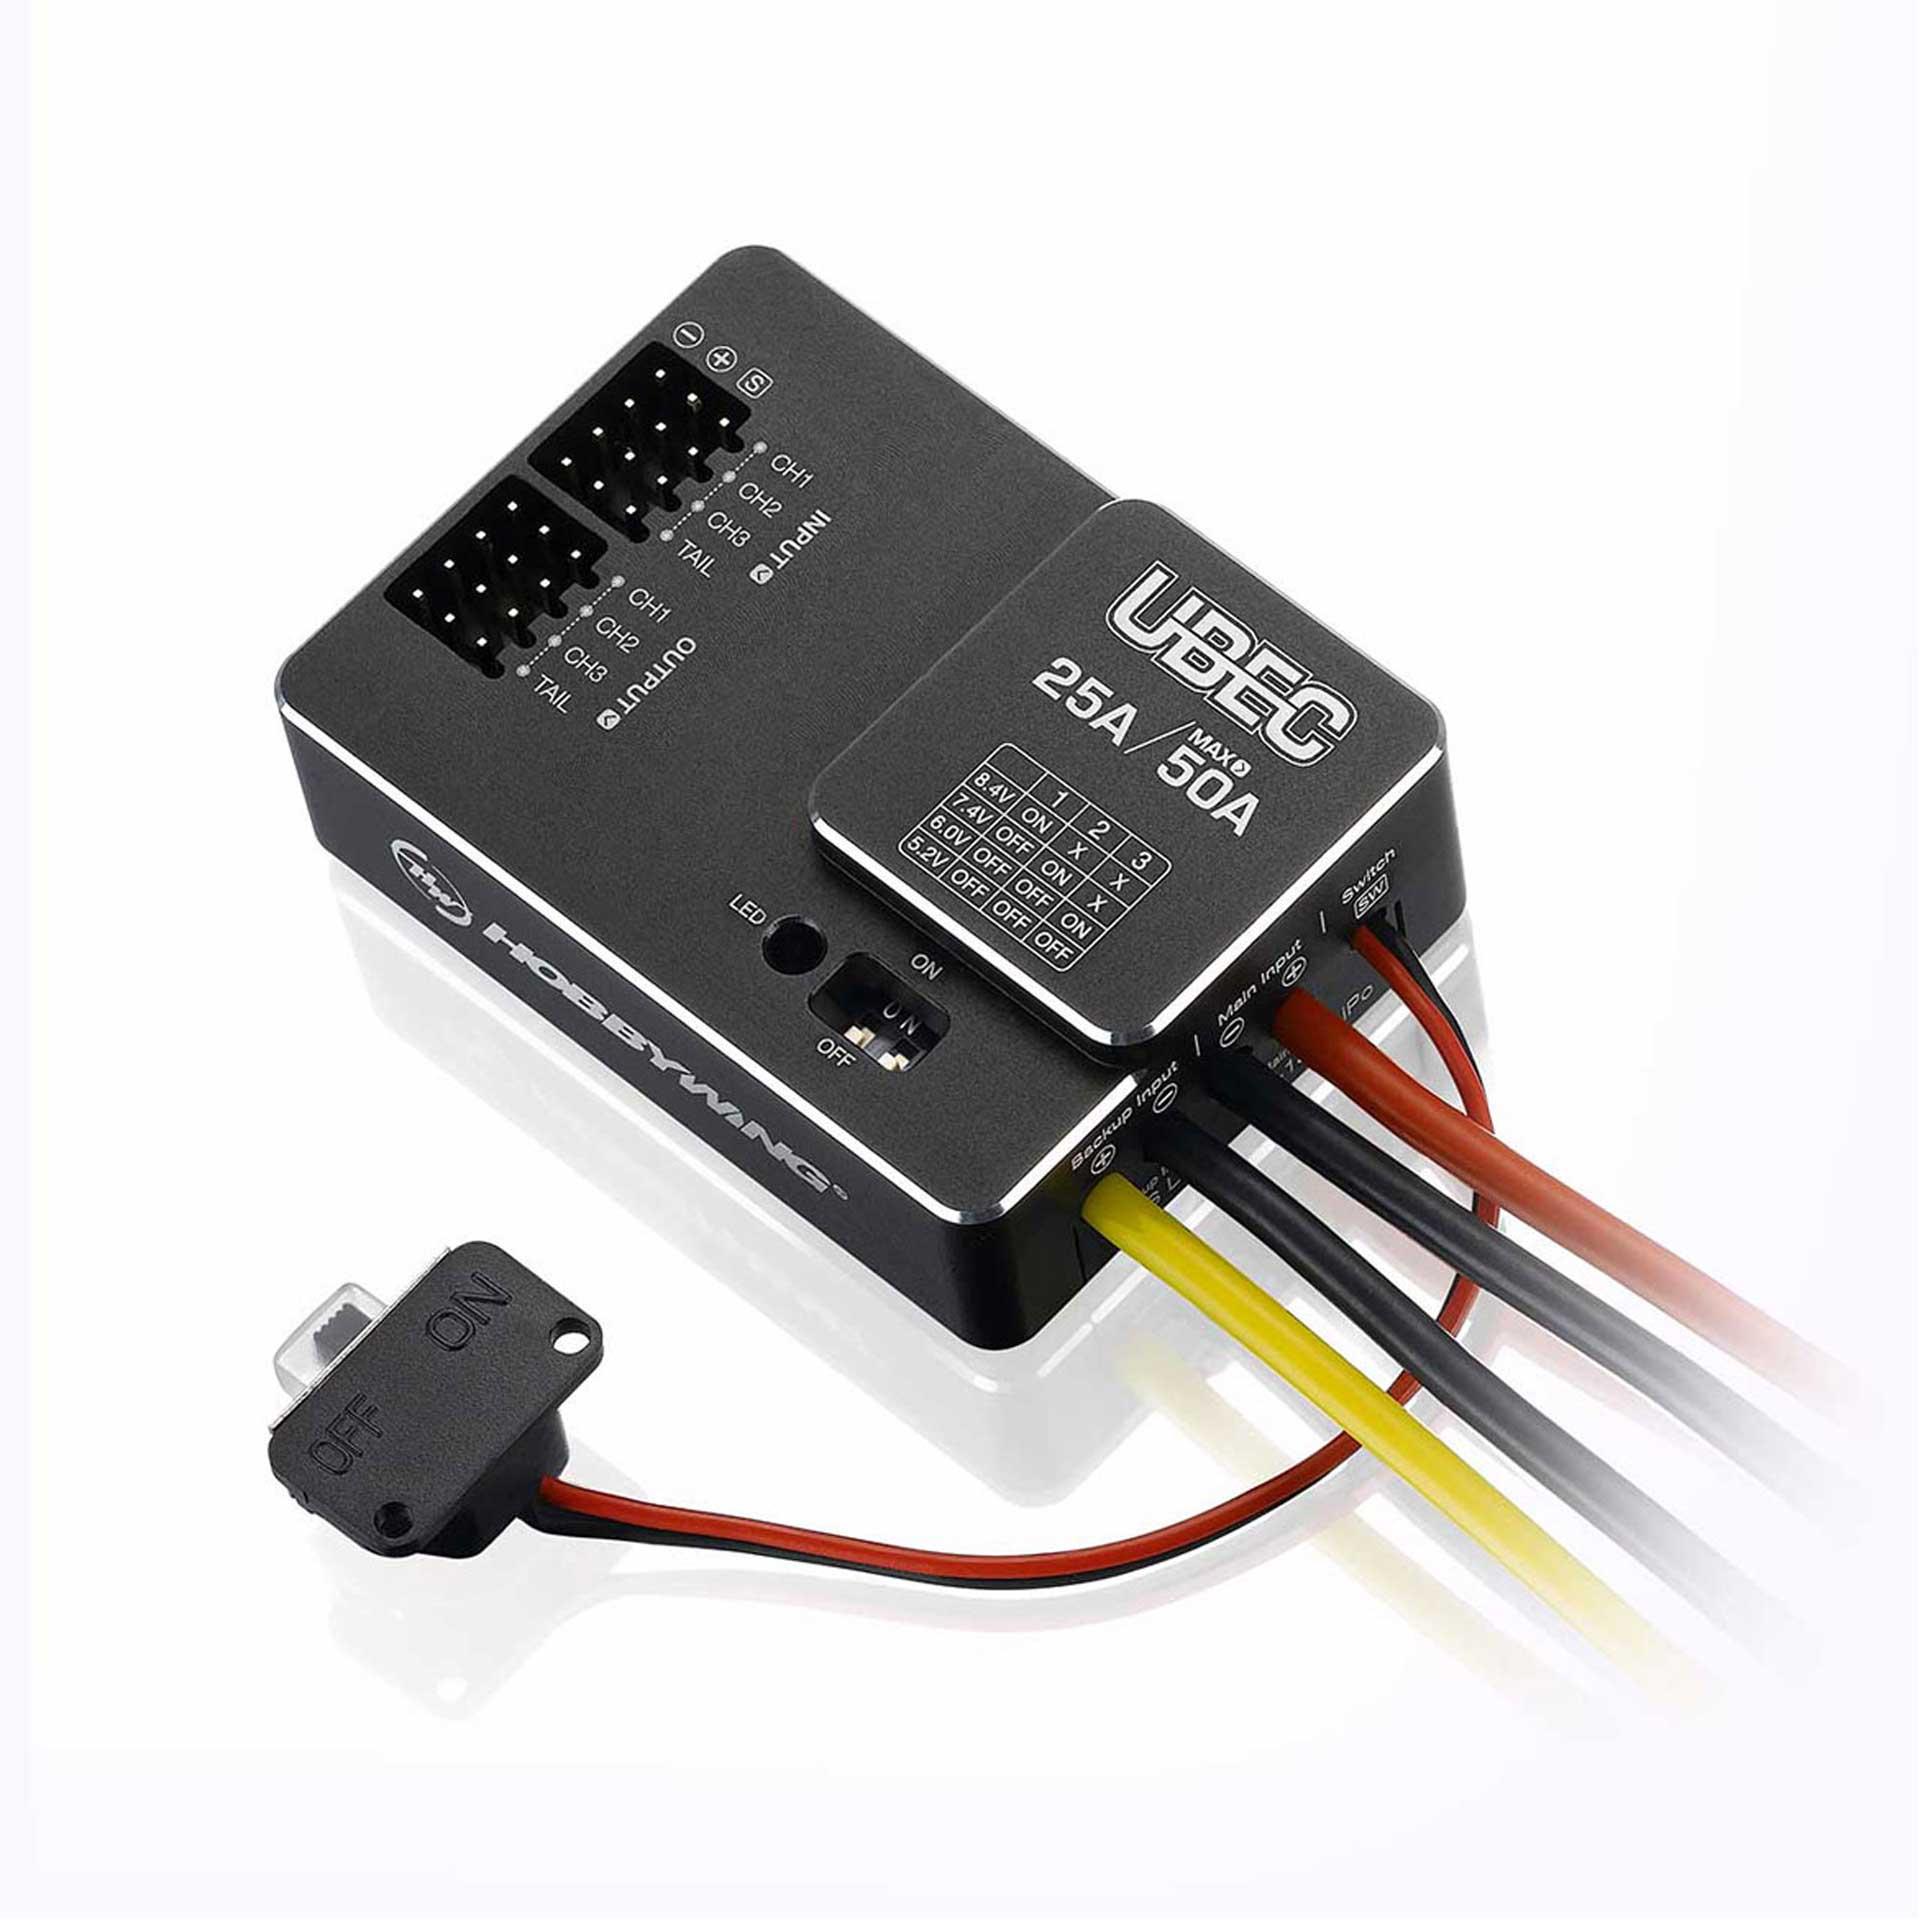 HOBBYWING BEC 25A UBEC CONTROLLER FOR 3-18S